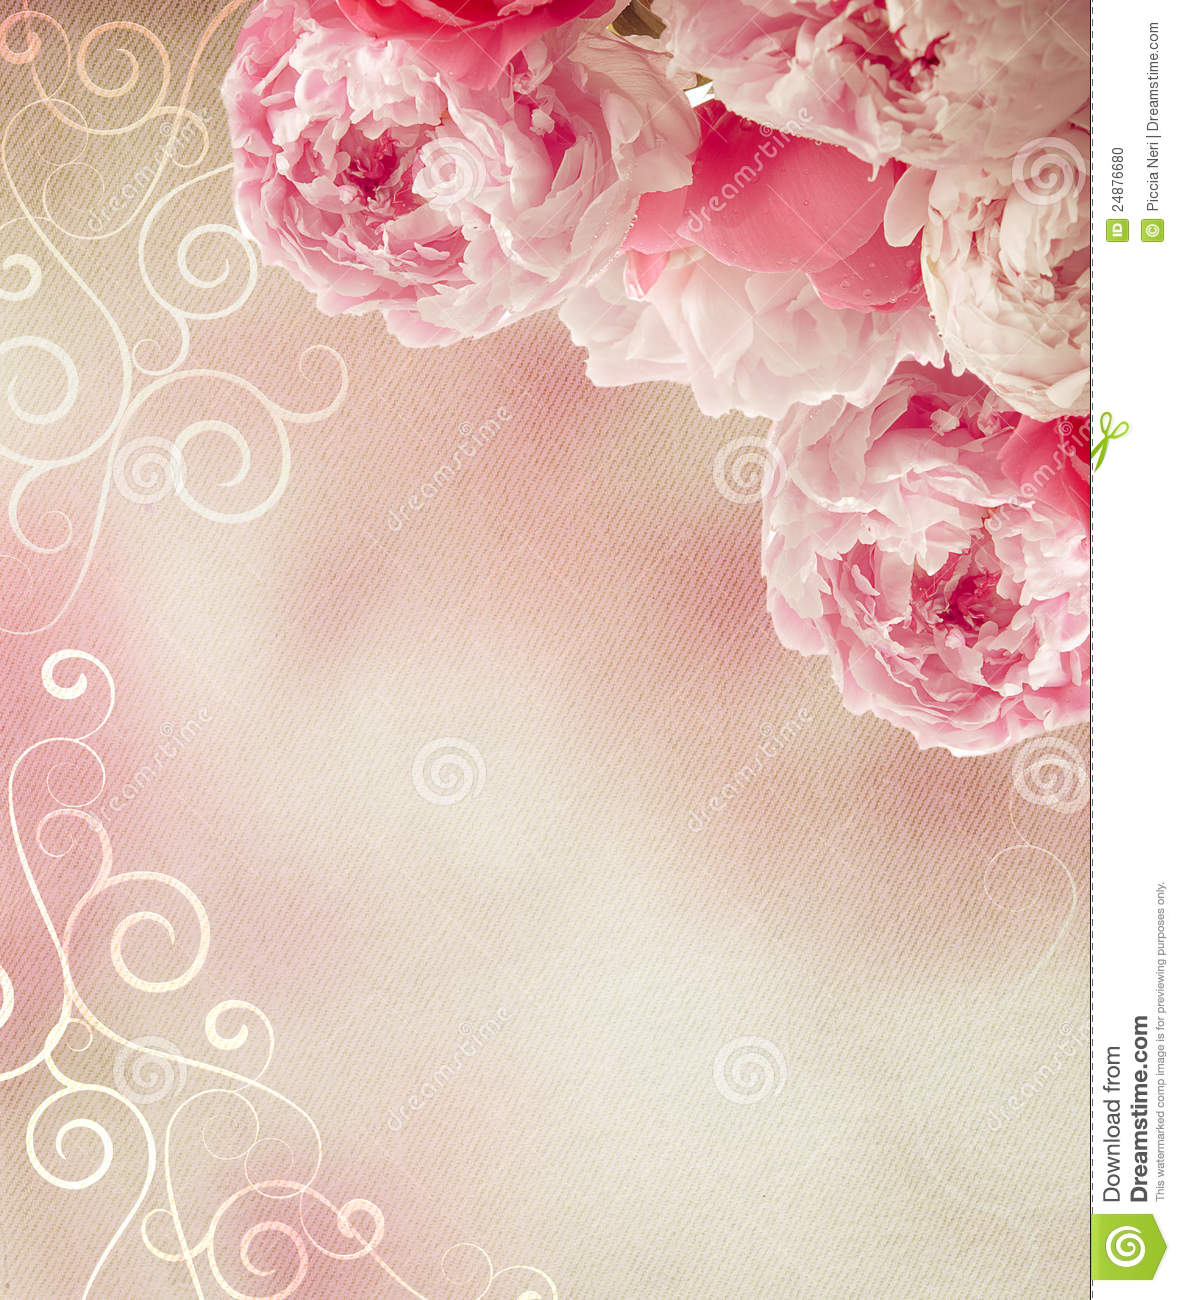 Vintage Peonies Frame Stock Photo Image Of Floral Plant